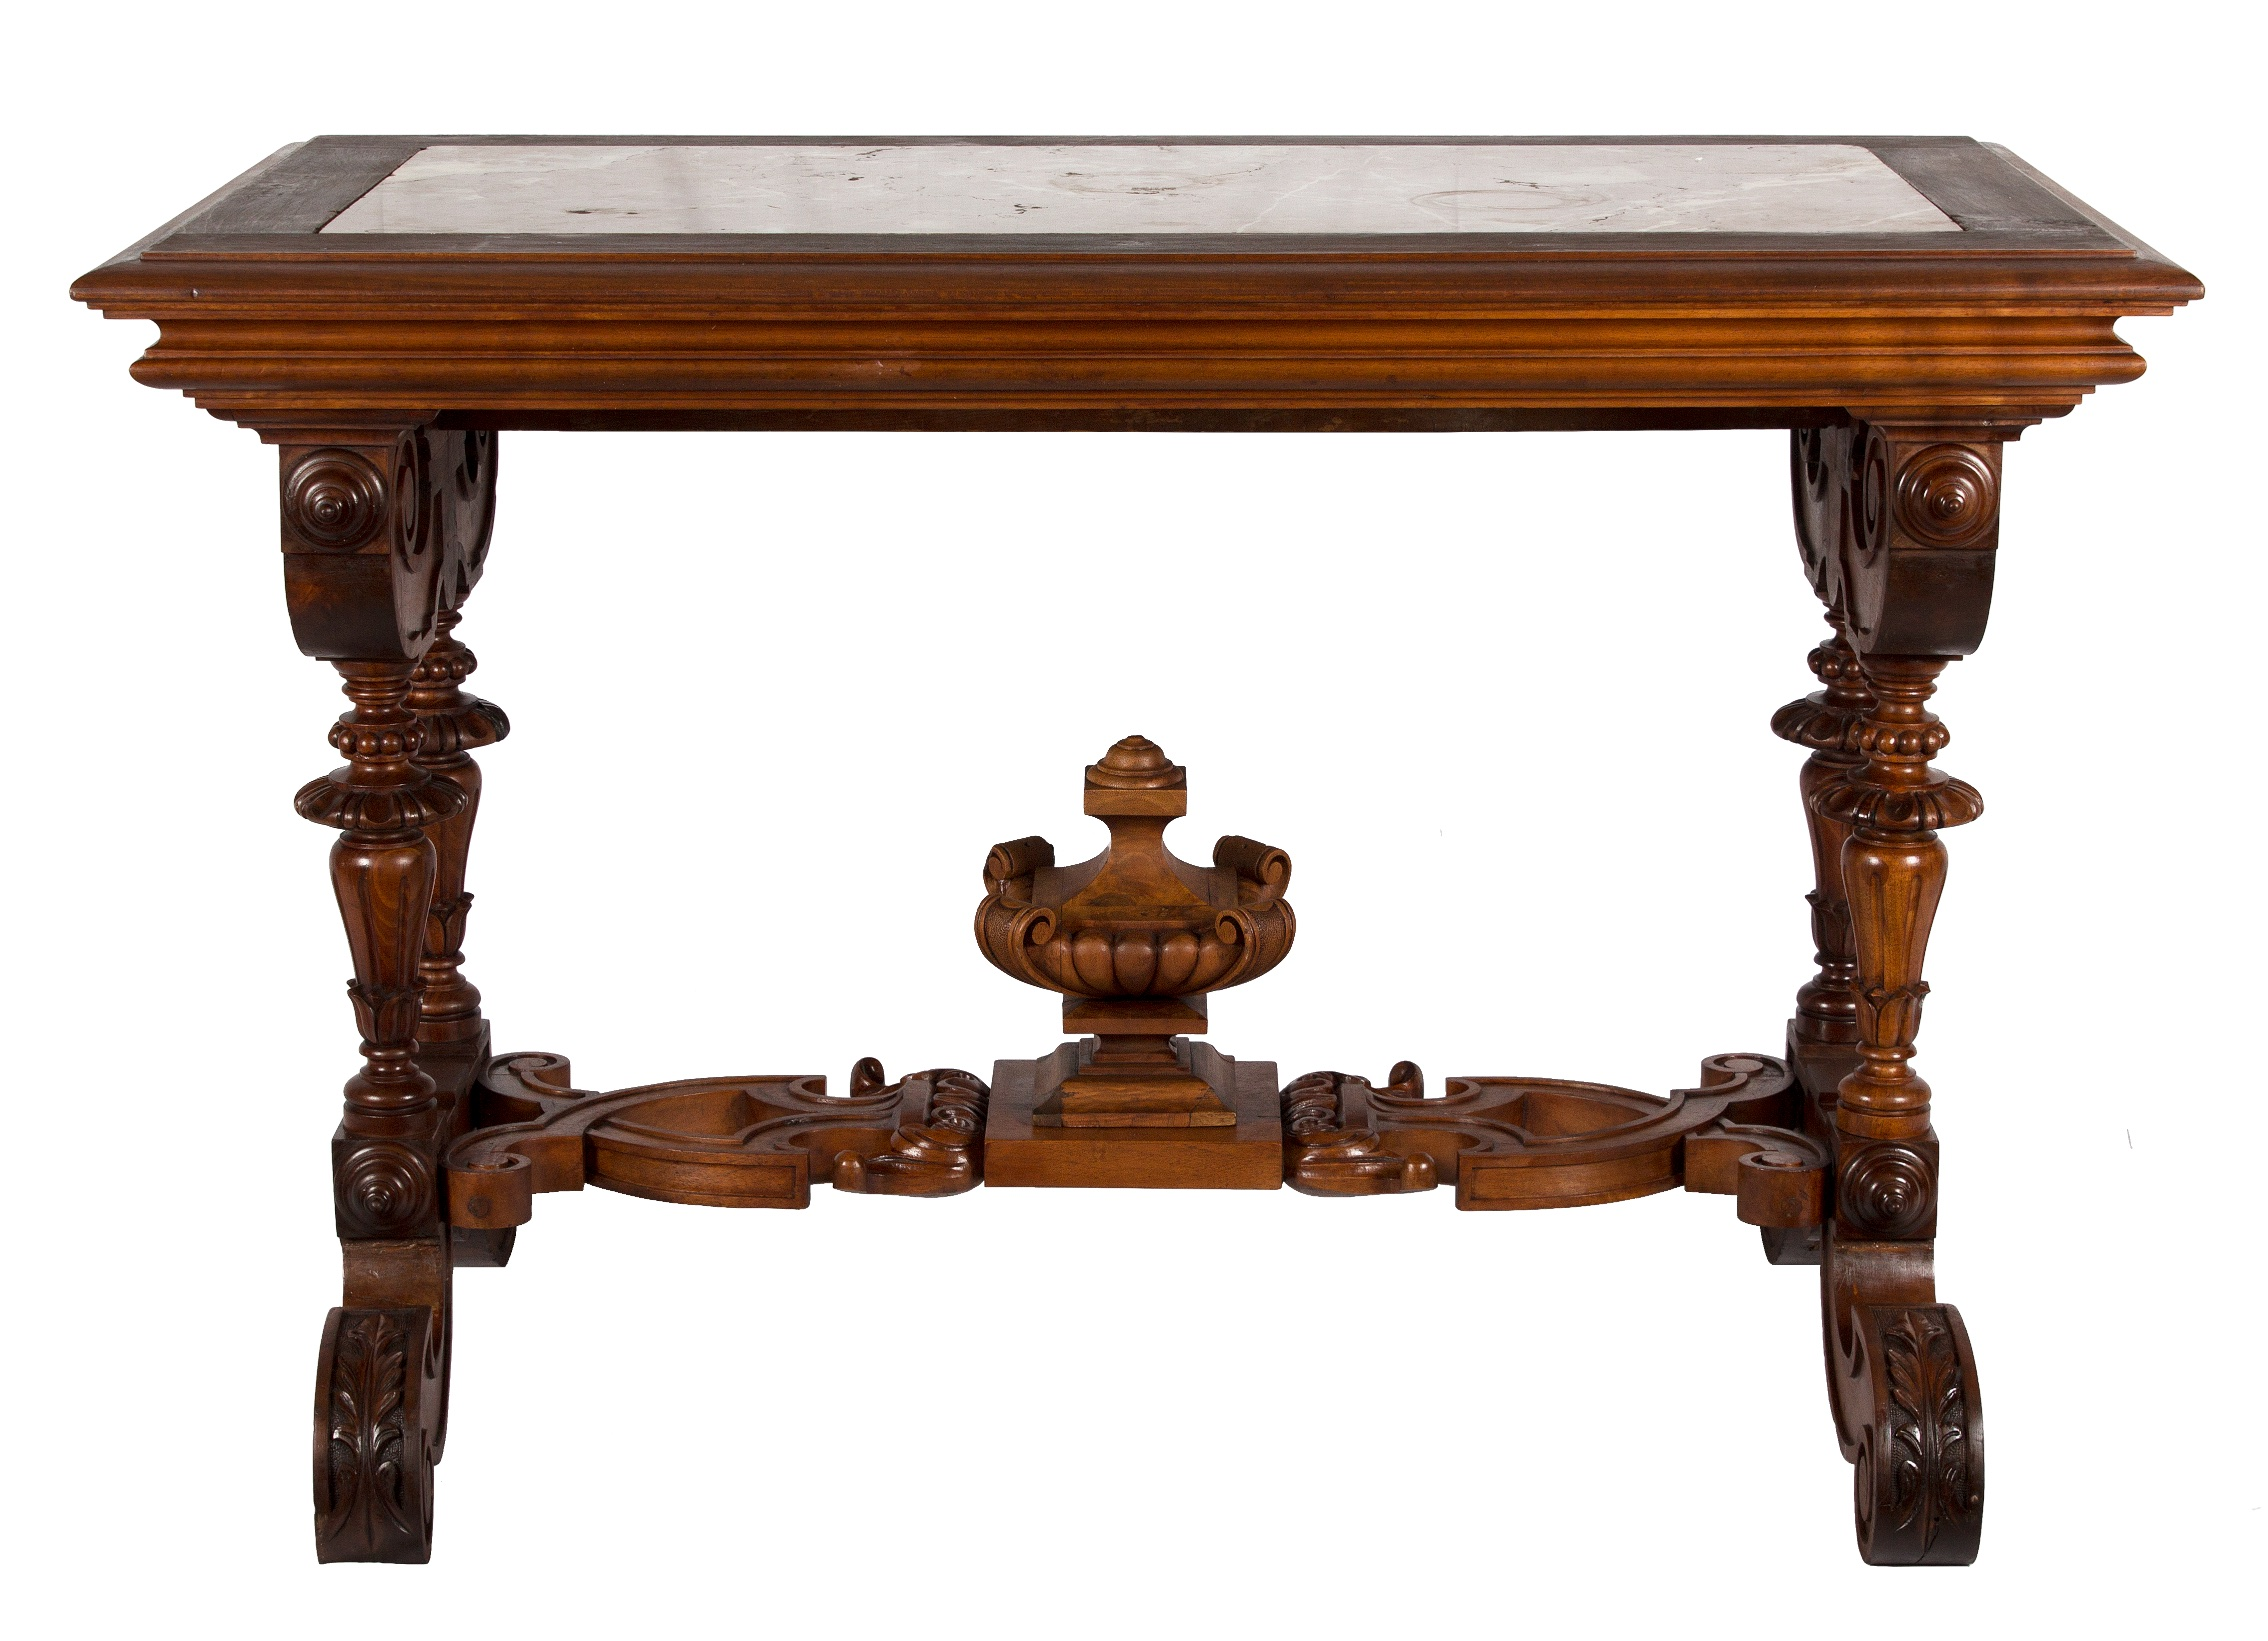 Schweitzer Linen hand carved French table with pink marble is from the late 1800's